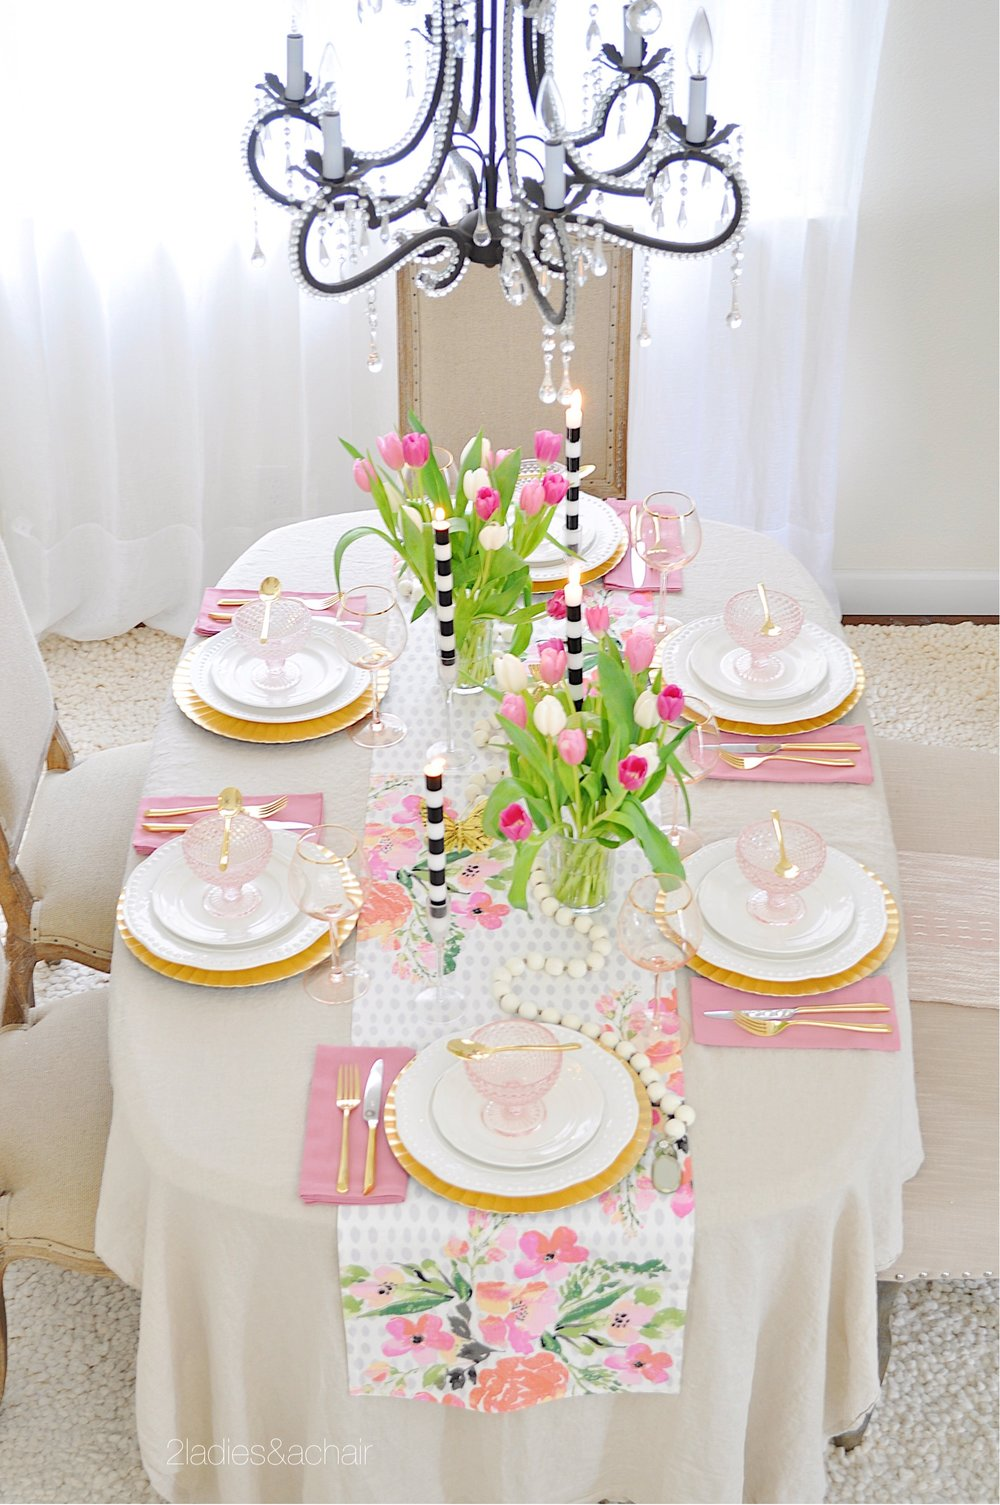 spring tablescape decor IMG_1936.JPG